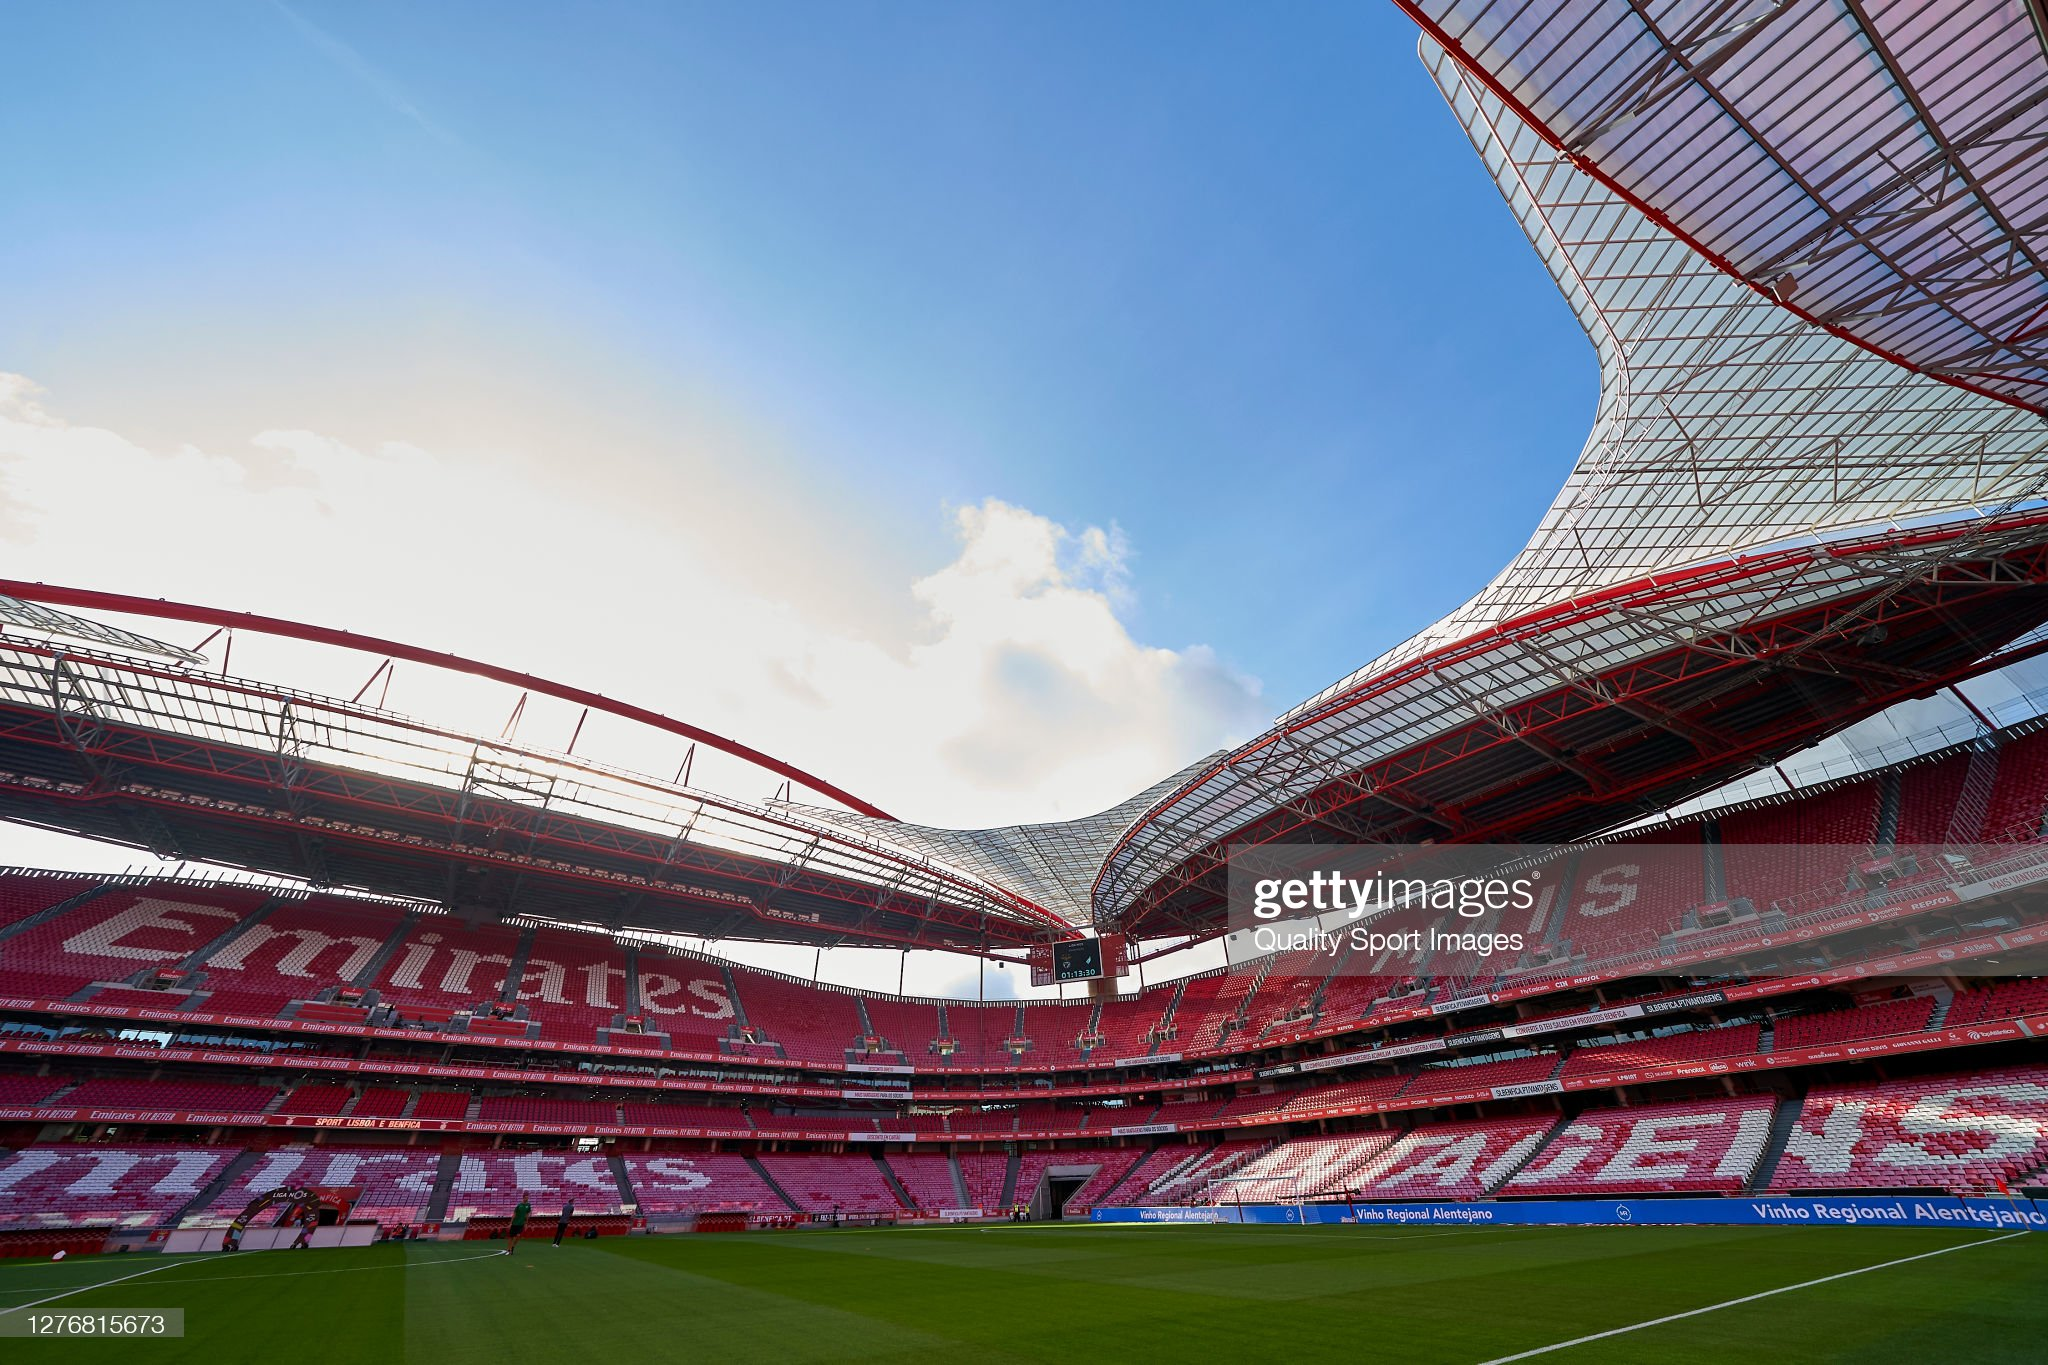 Benfica vs Rangers Preview, prediction and odds